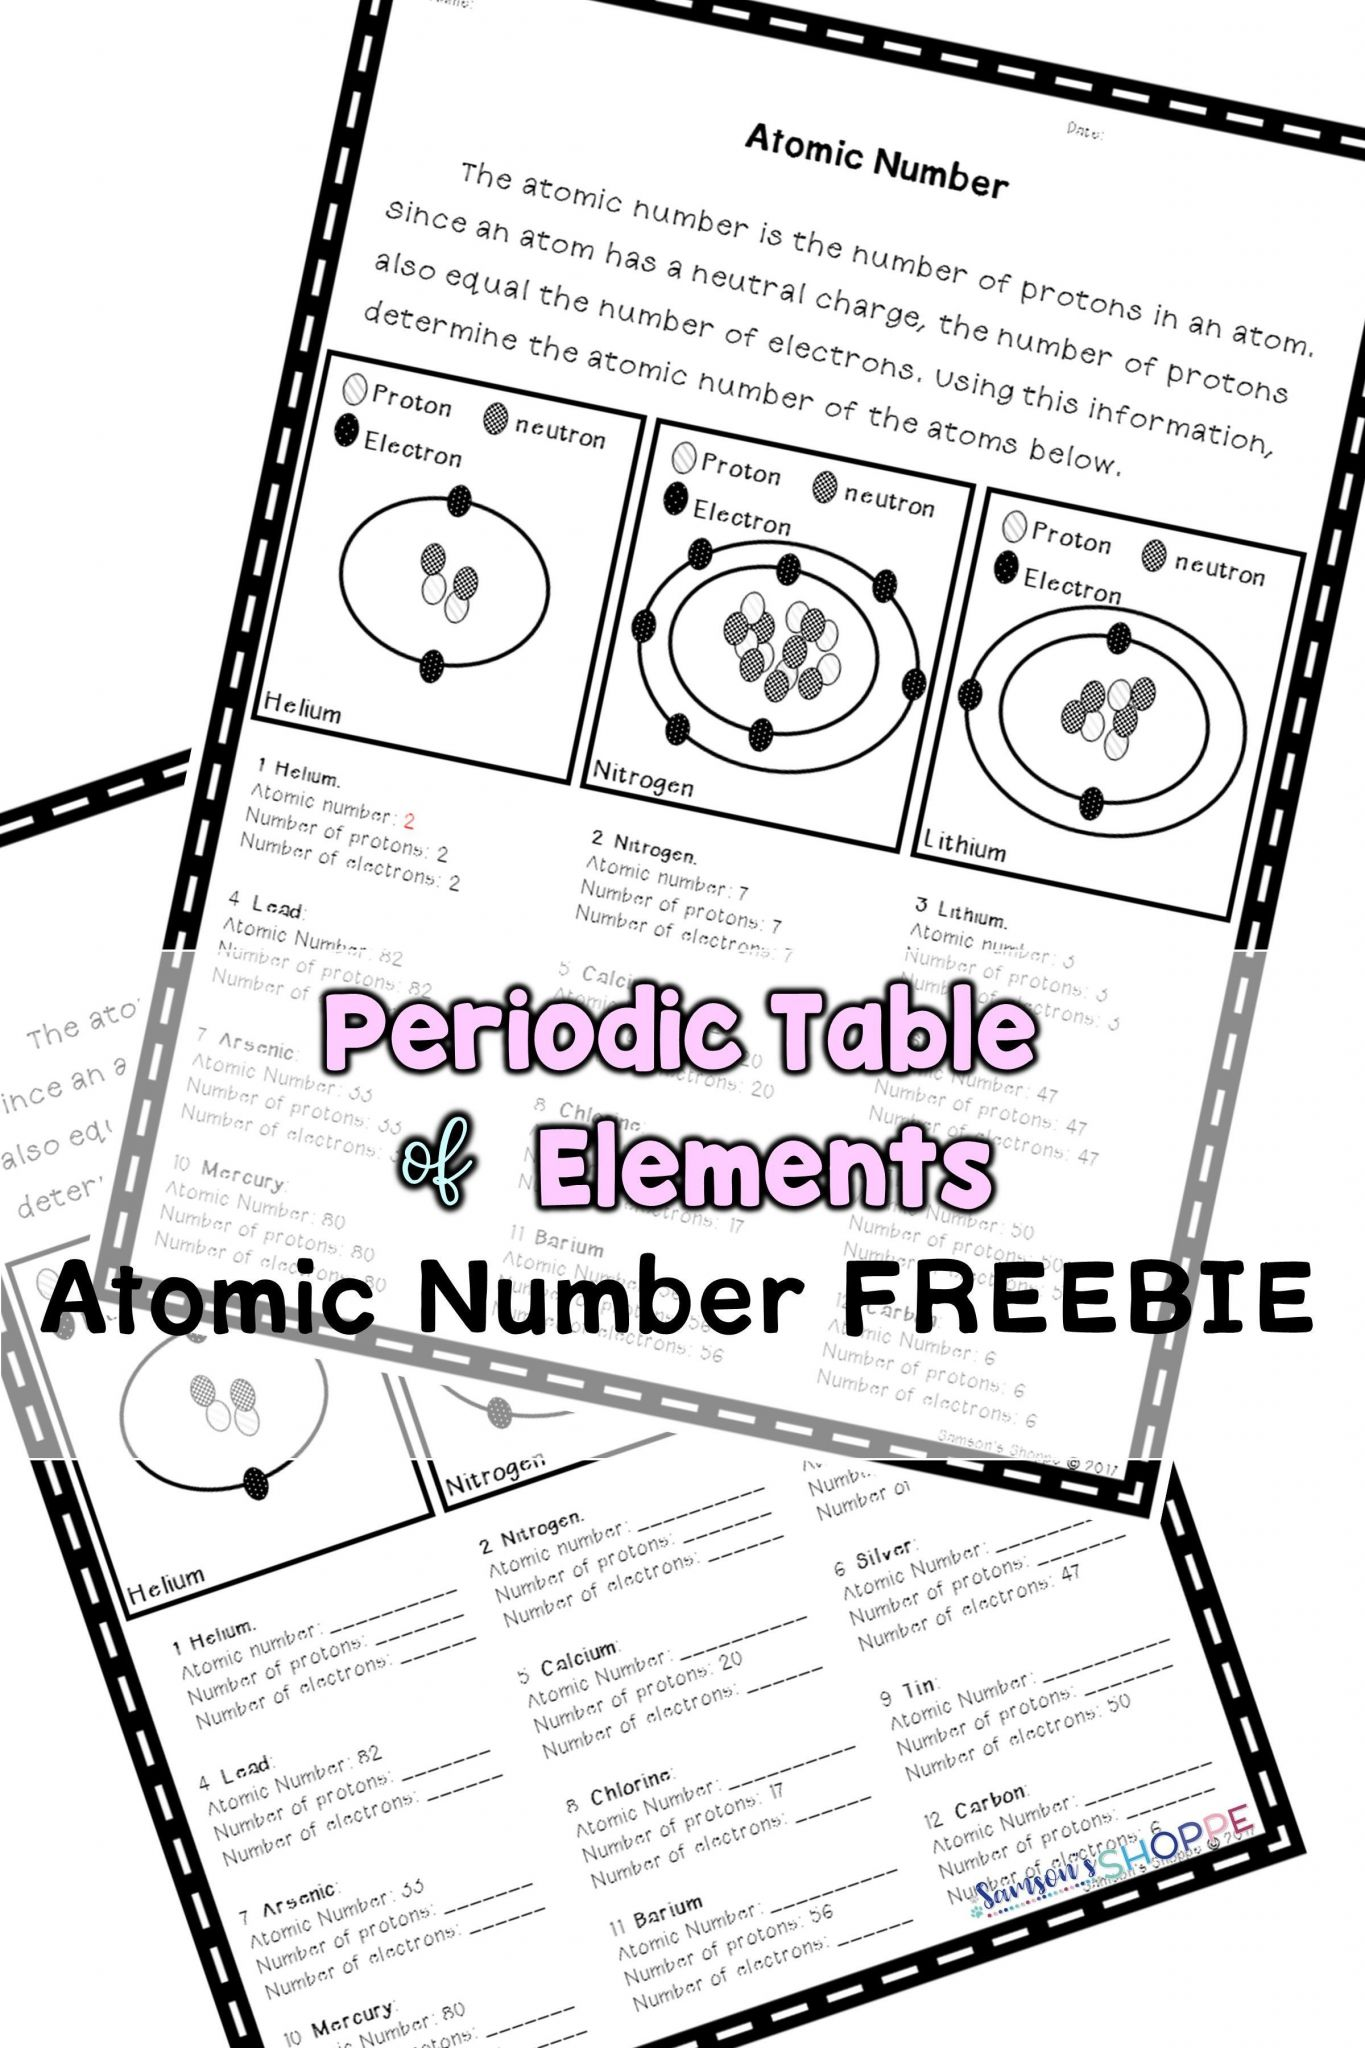 How To Read The Periodic Table Protons Neutrons And Electrons